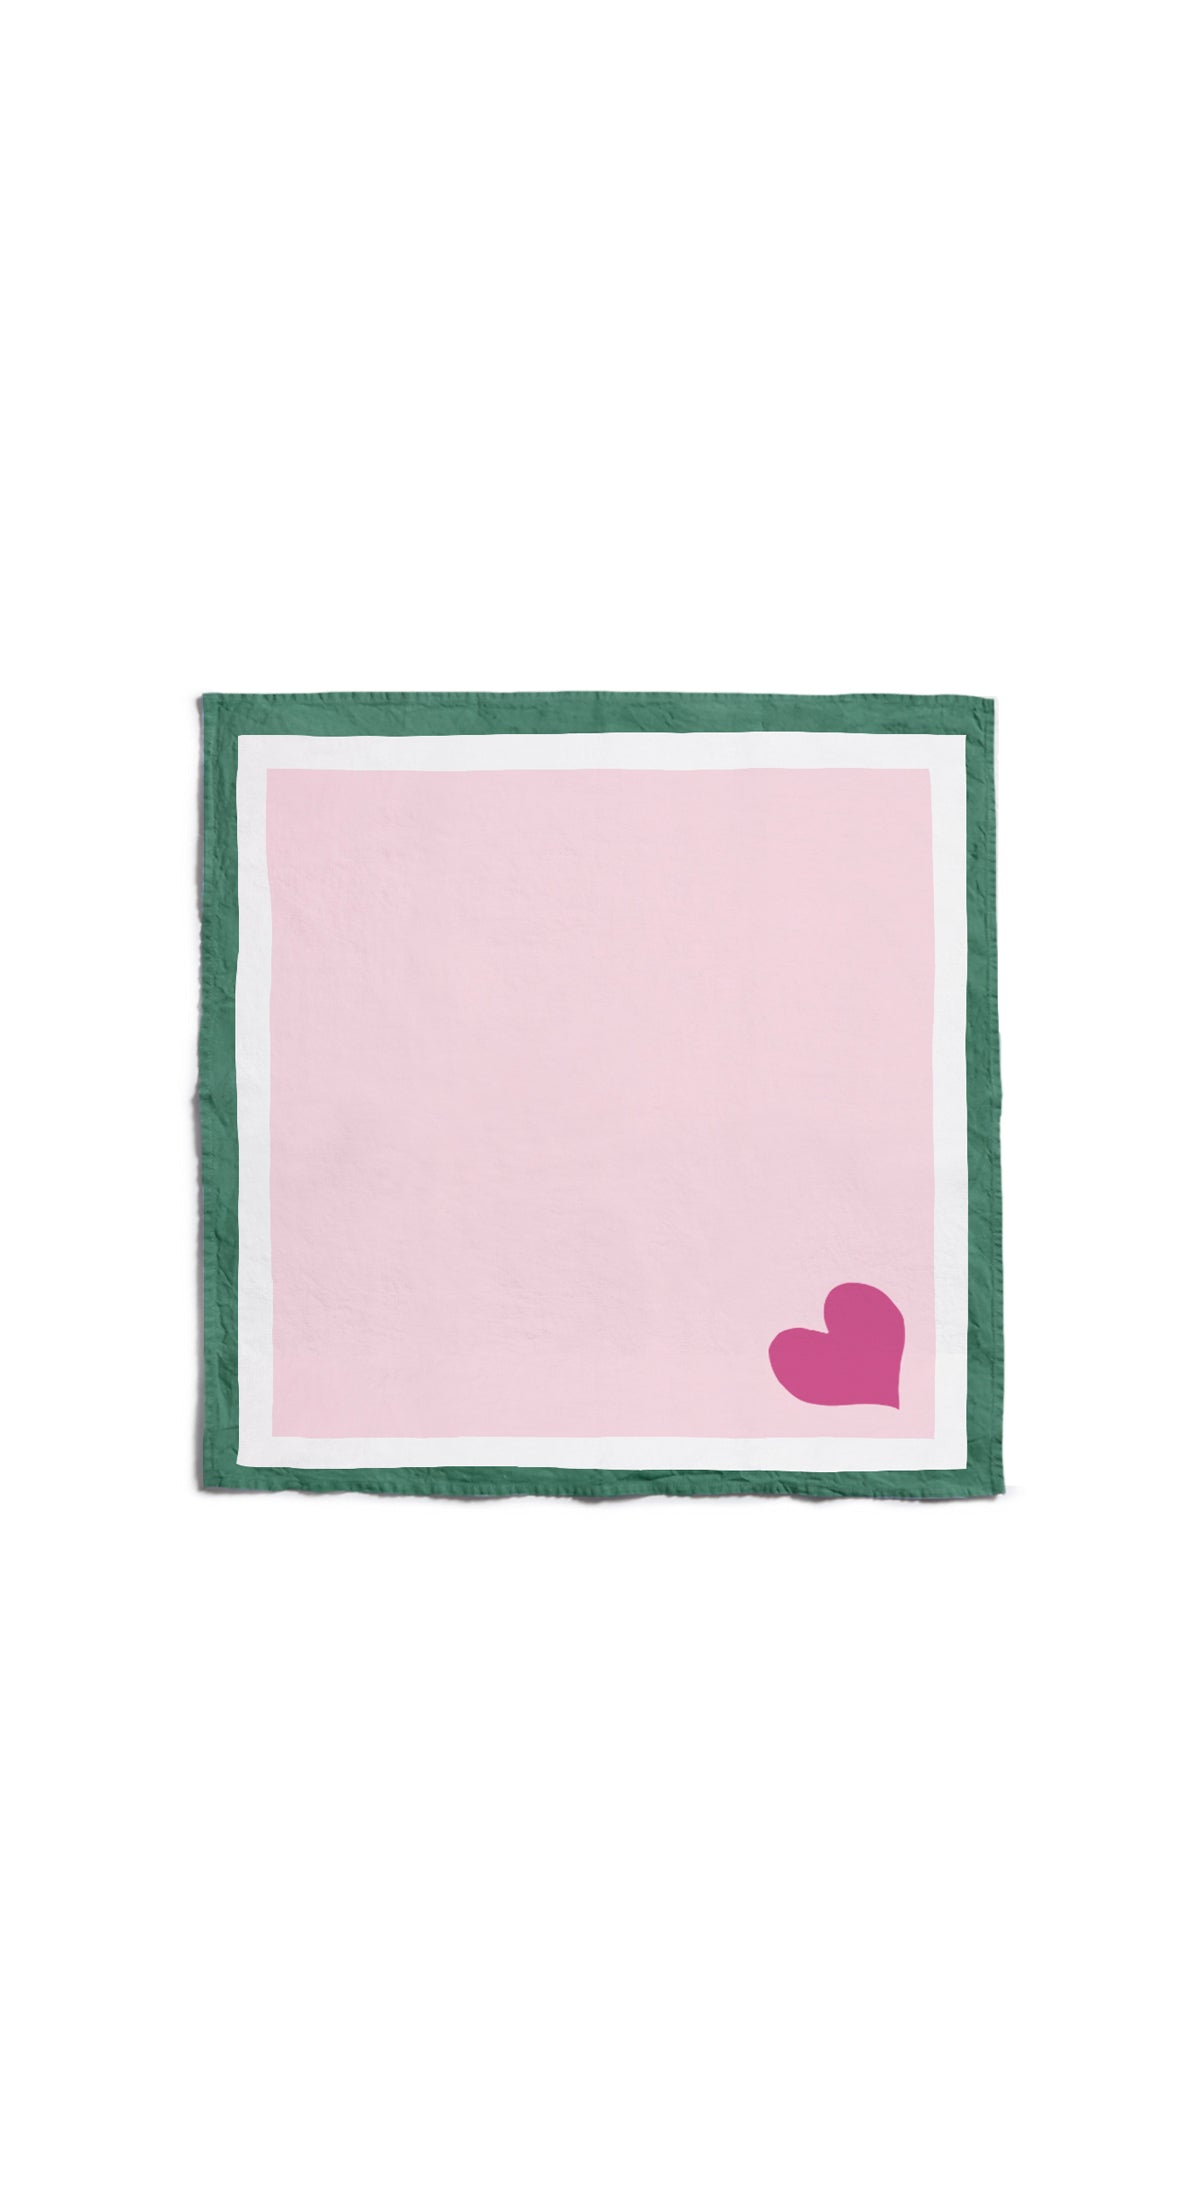 S&B x Lisou Heart Linen Napkin in Petal Pink and Forest Green